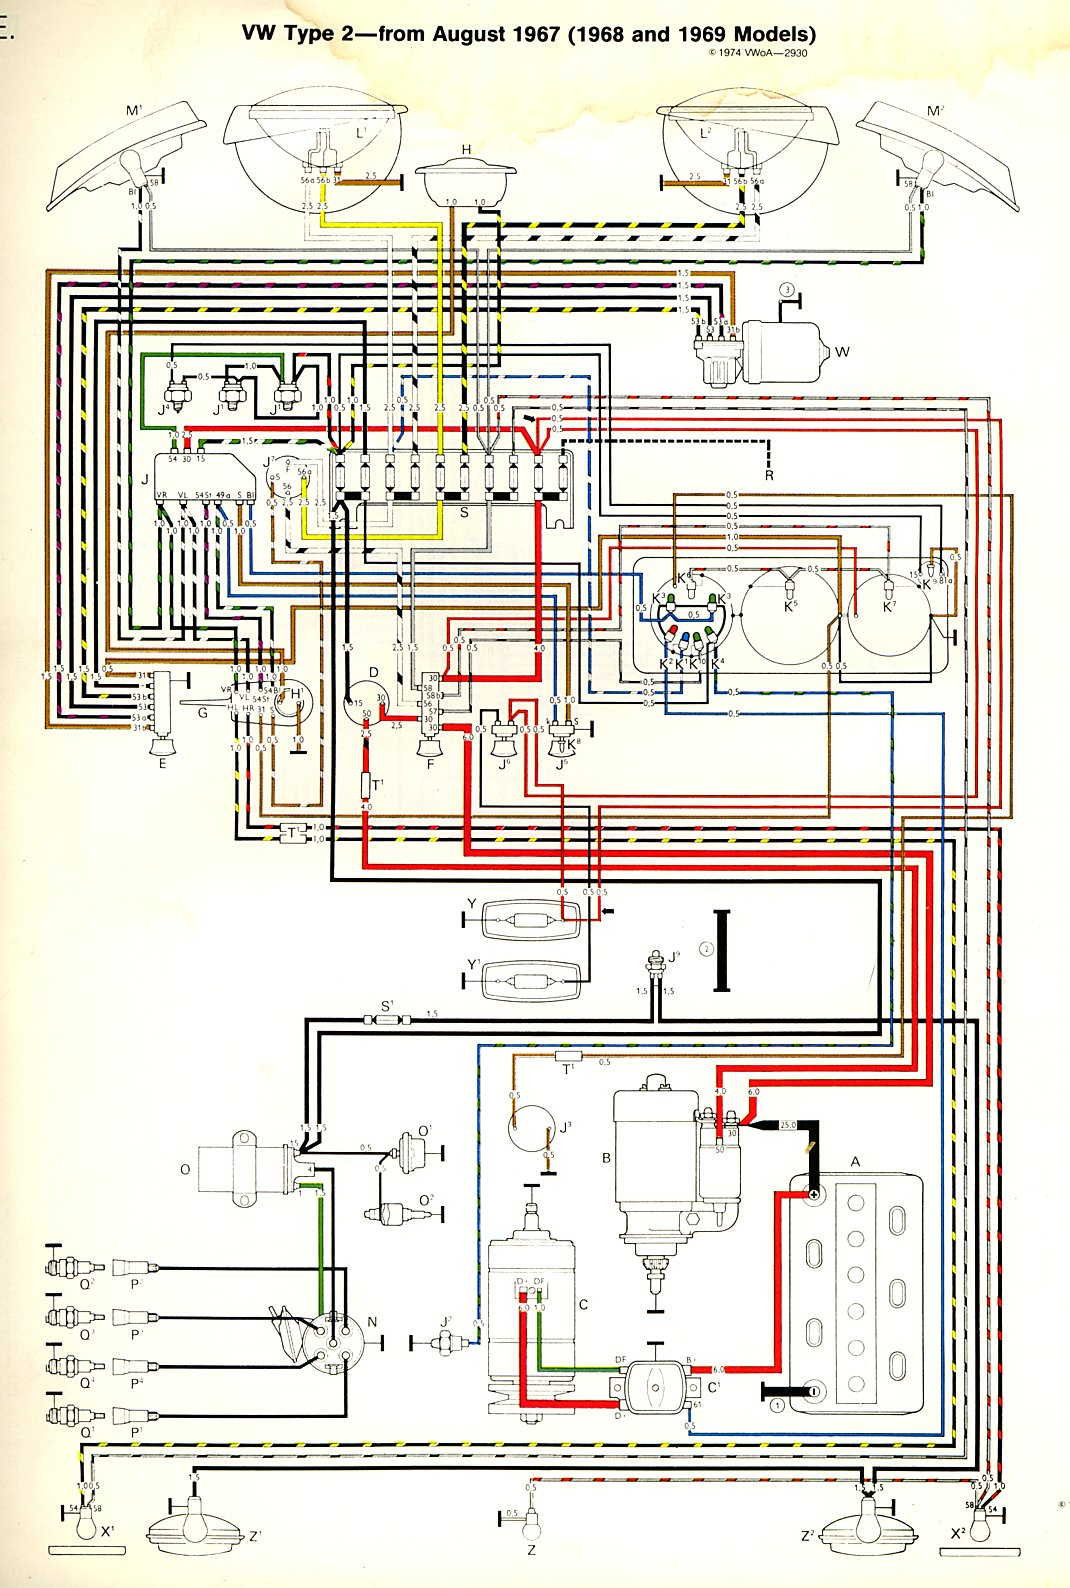 baybus_6869a 1968 69 bus wiring diagram thegoldenbug com 1971 vw bus wiring diagram at aneh.co